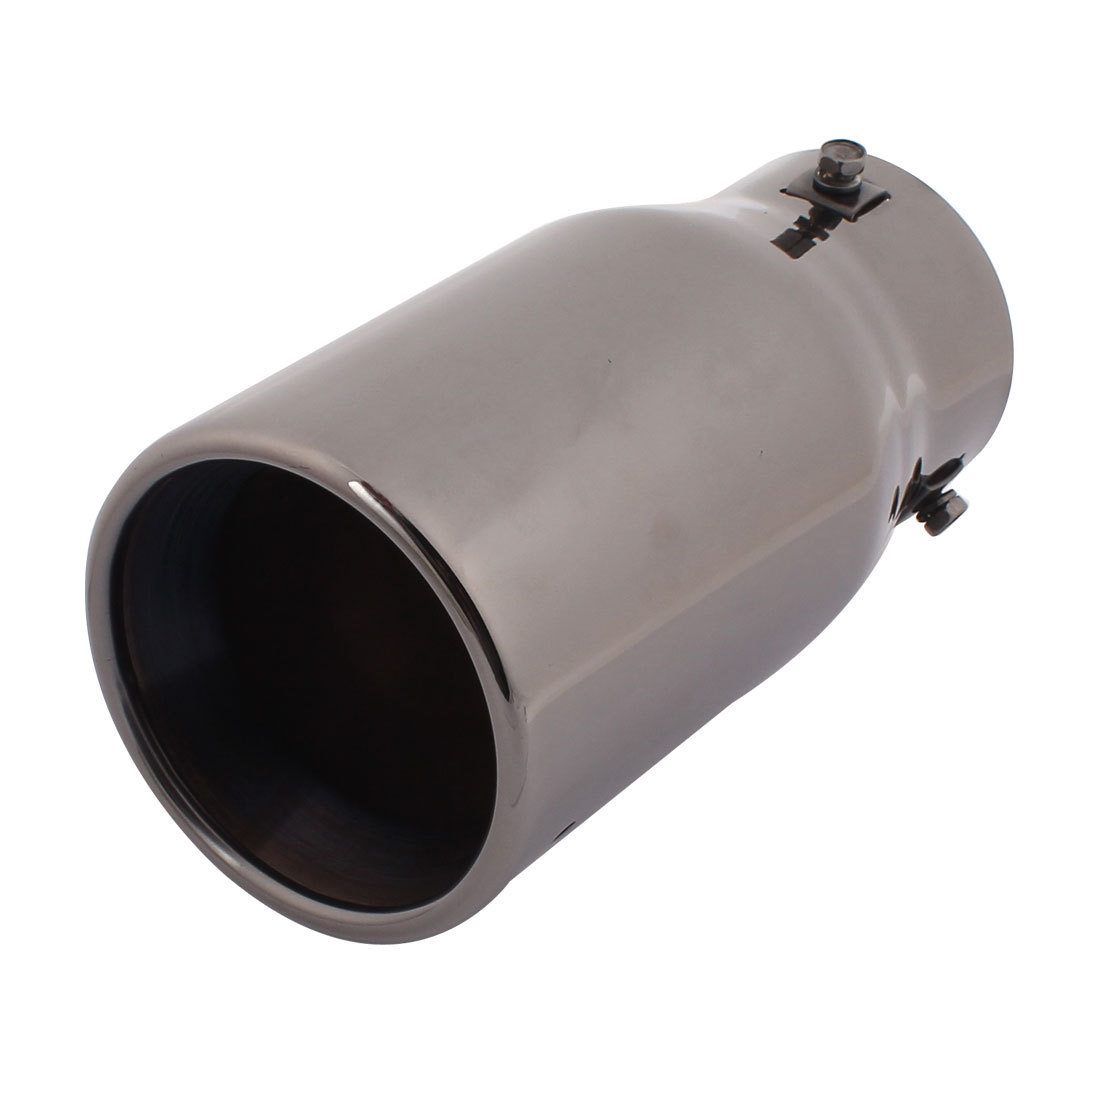 Vehicle Car Auto Round 77mm Inlet Rear Silencer Tail Exhaust Muffler Tip Pipe